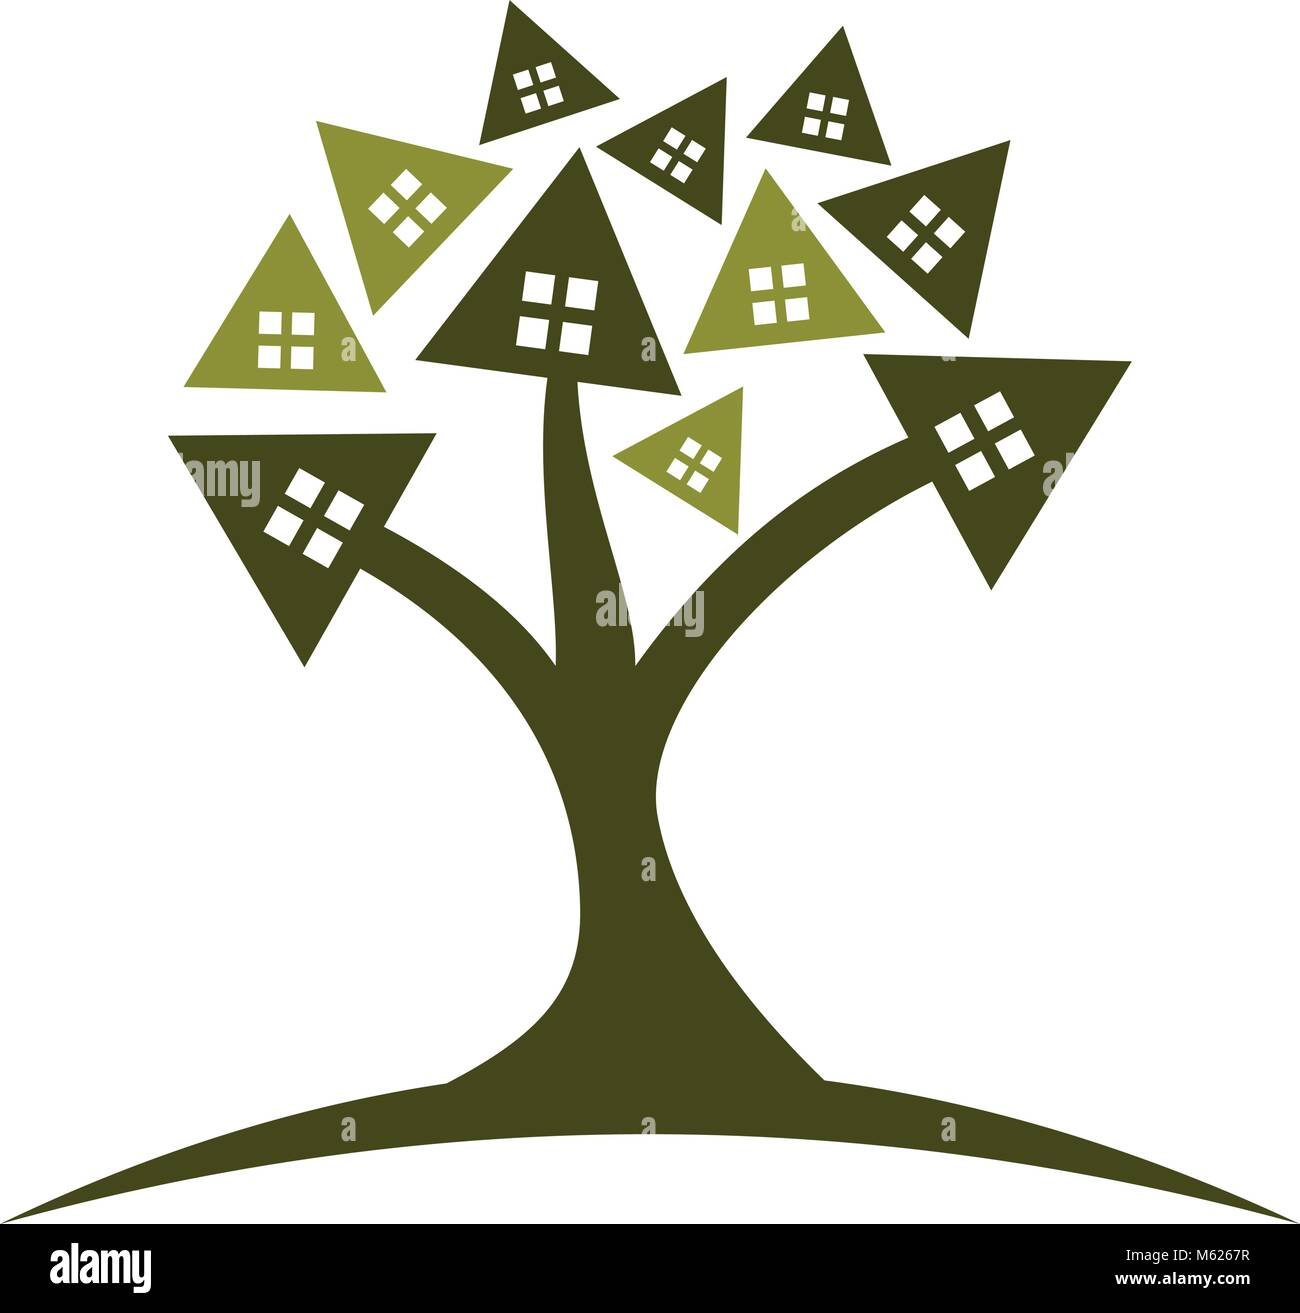 Tree of House Stock Vector